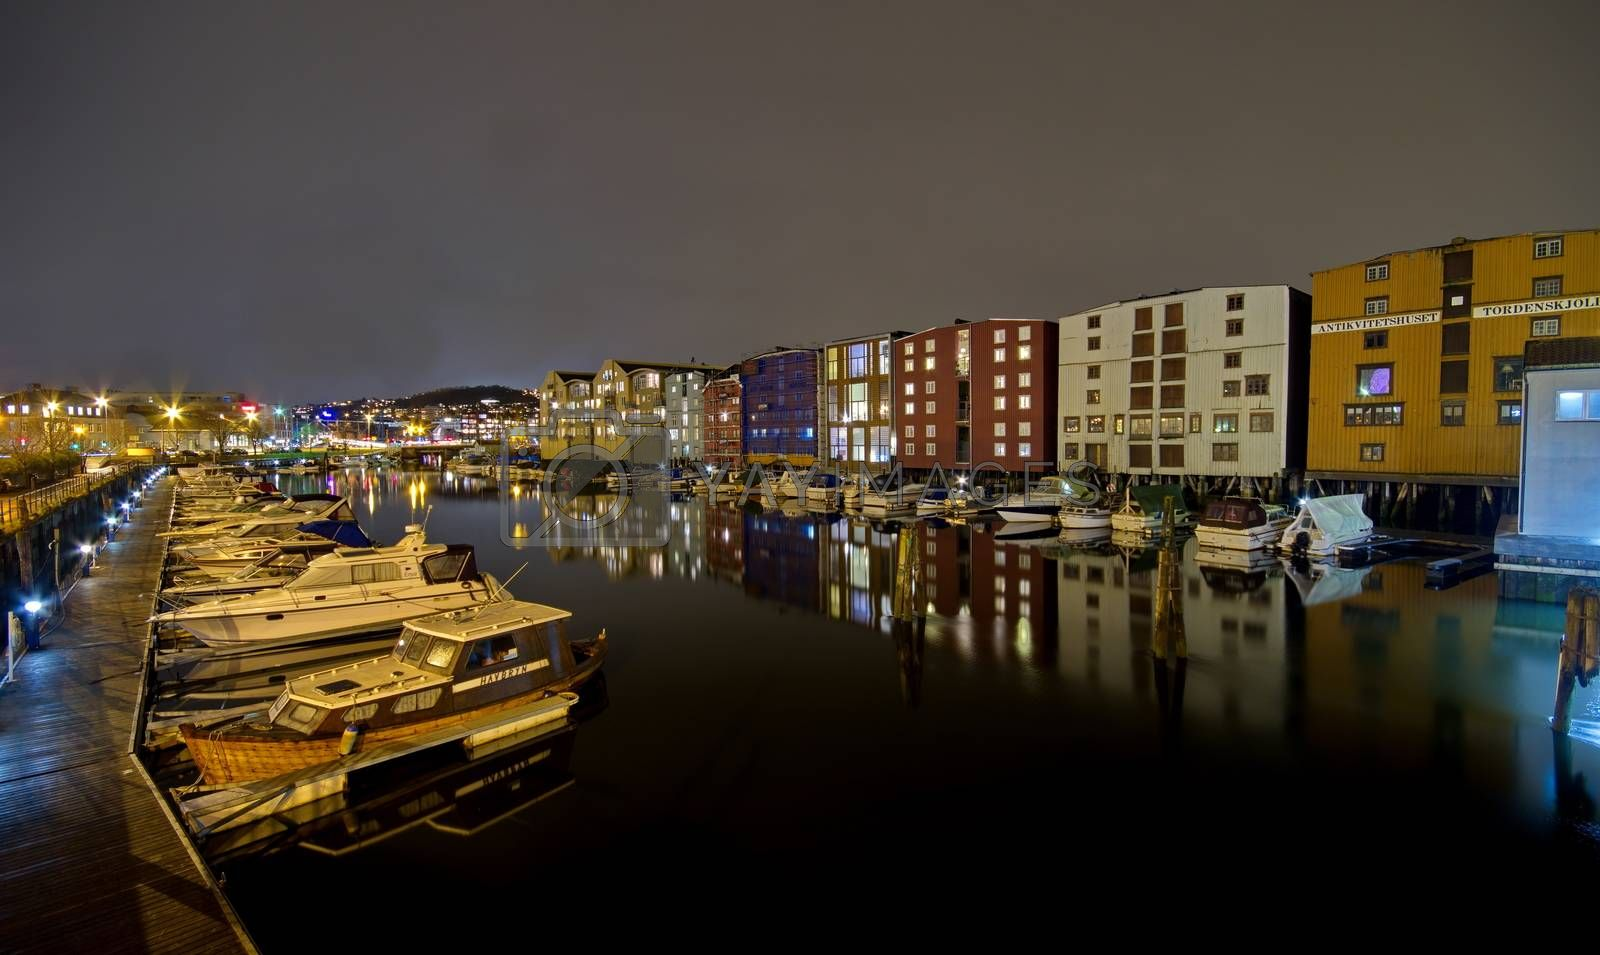 Royalty free image of Ships in the port of Trondheim, Norway by anderm